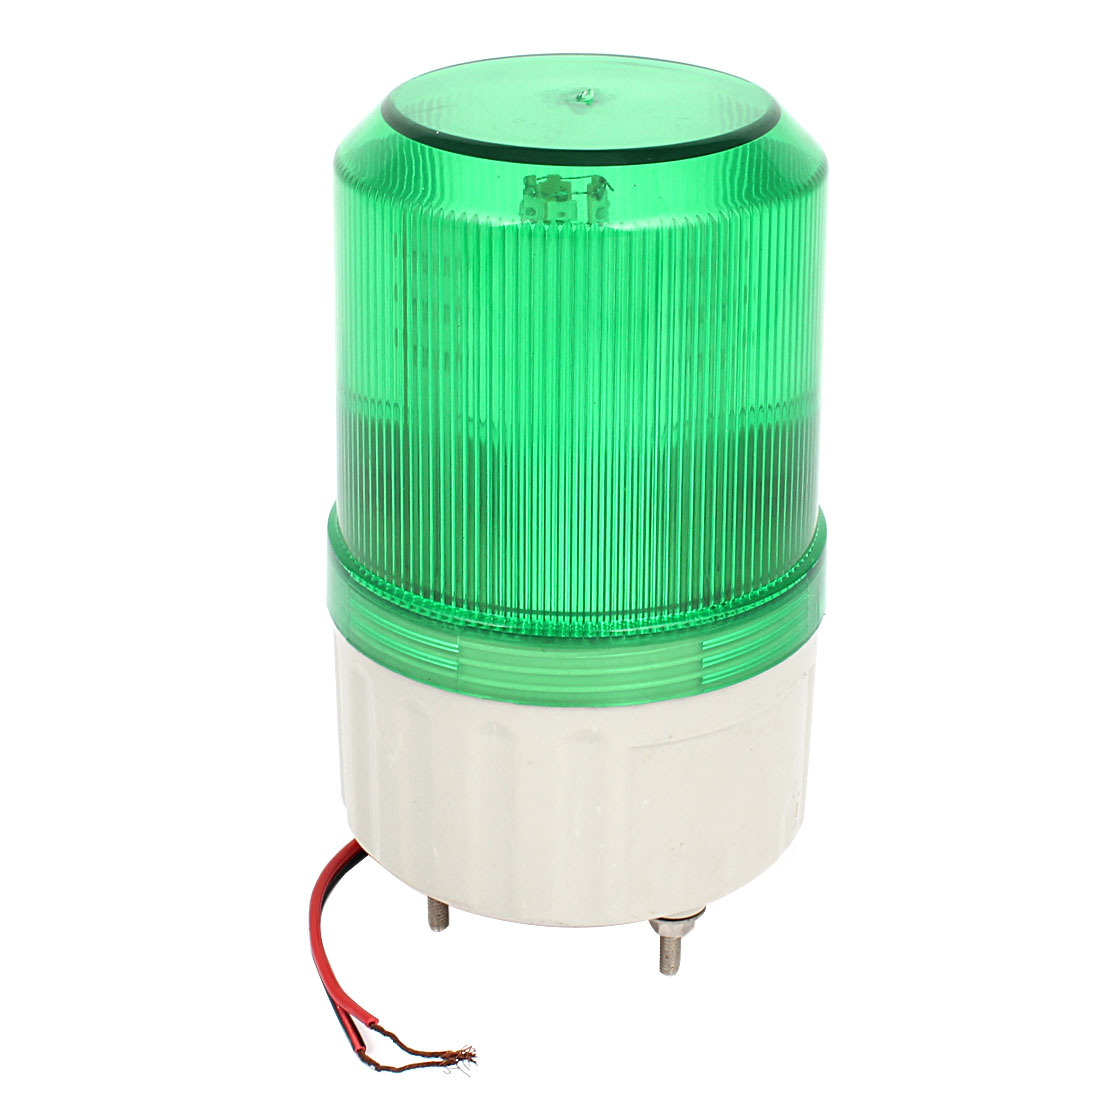 DC 24V Green LED Flash Industry Signal Tower Warning Light Lamp Buzzer 90dB